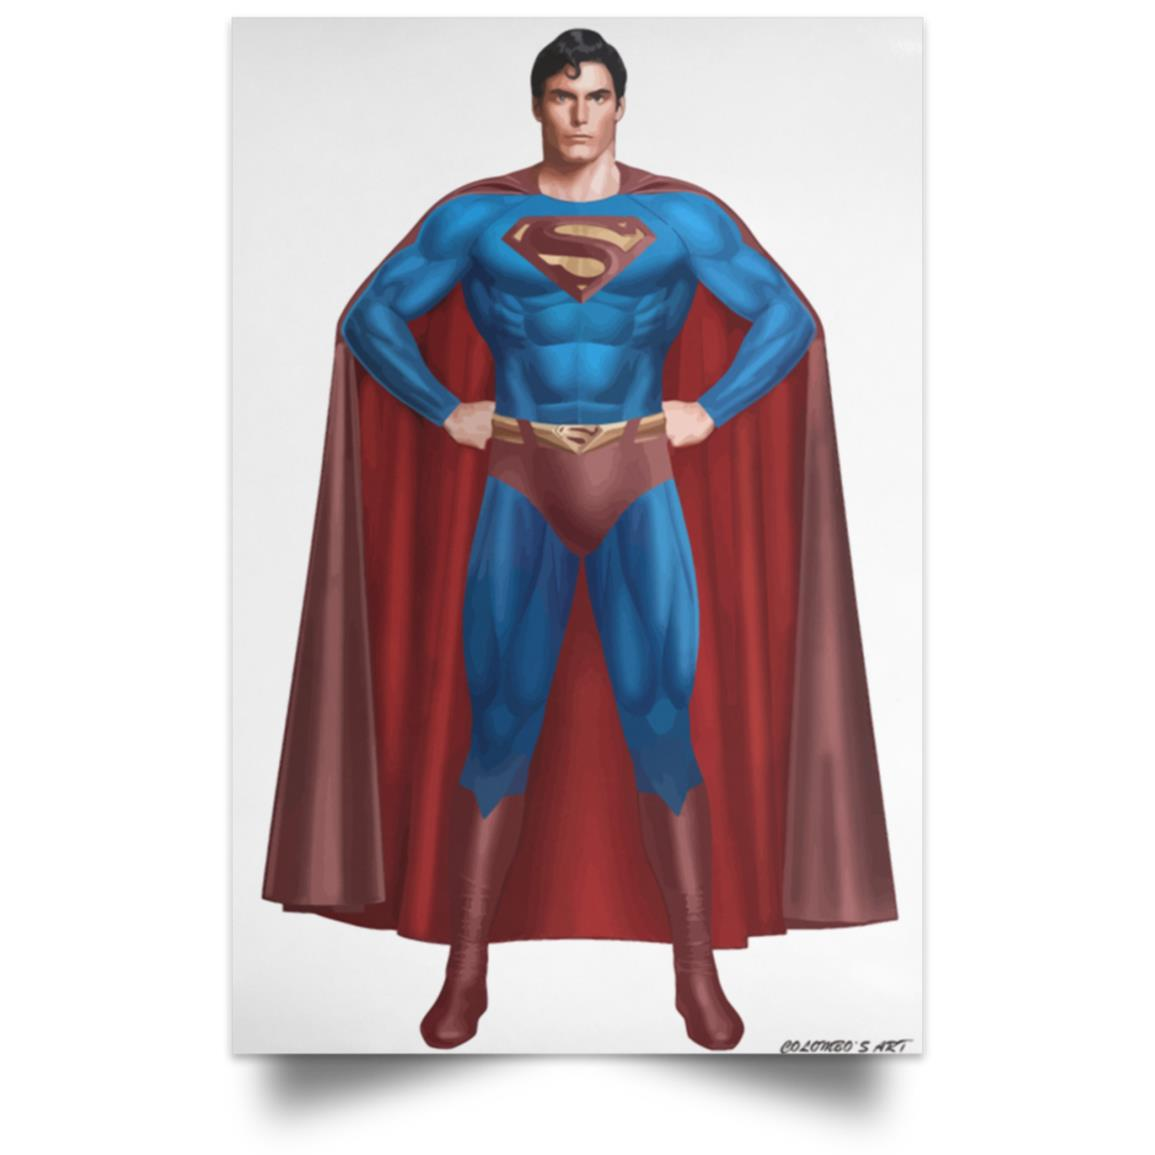 SUPERMAN CHRISTOPHER REEVES POSTER 1